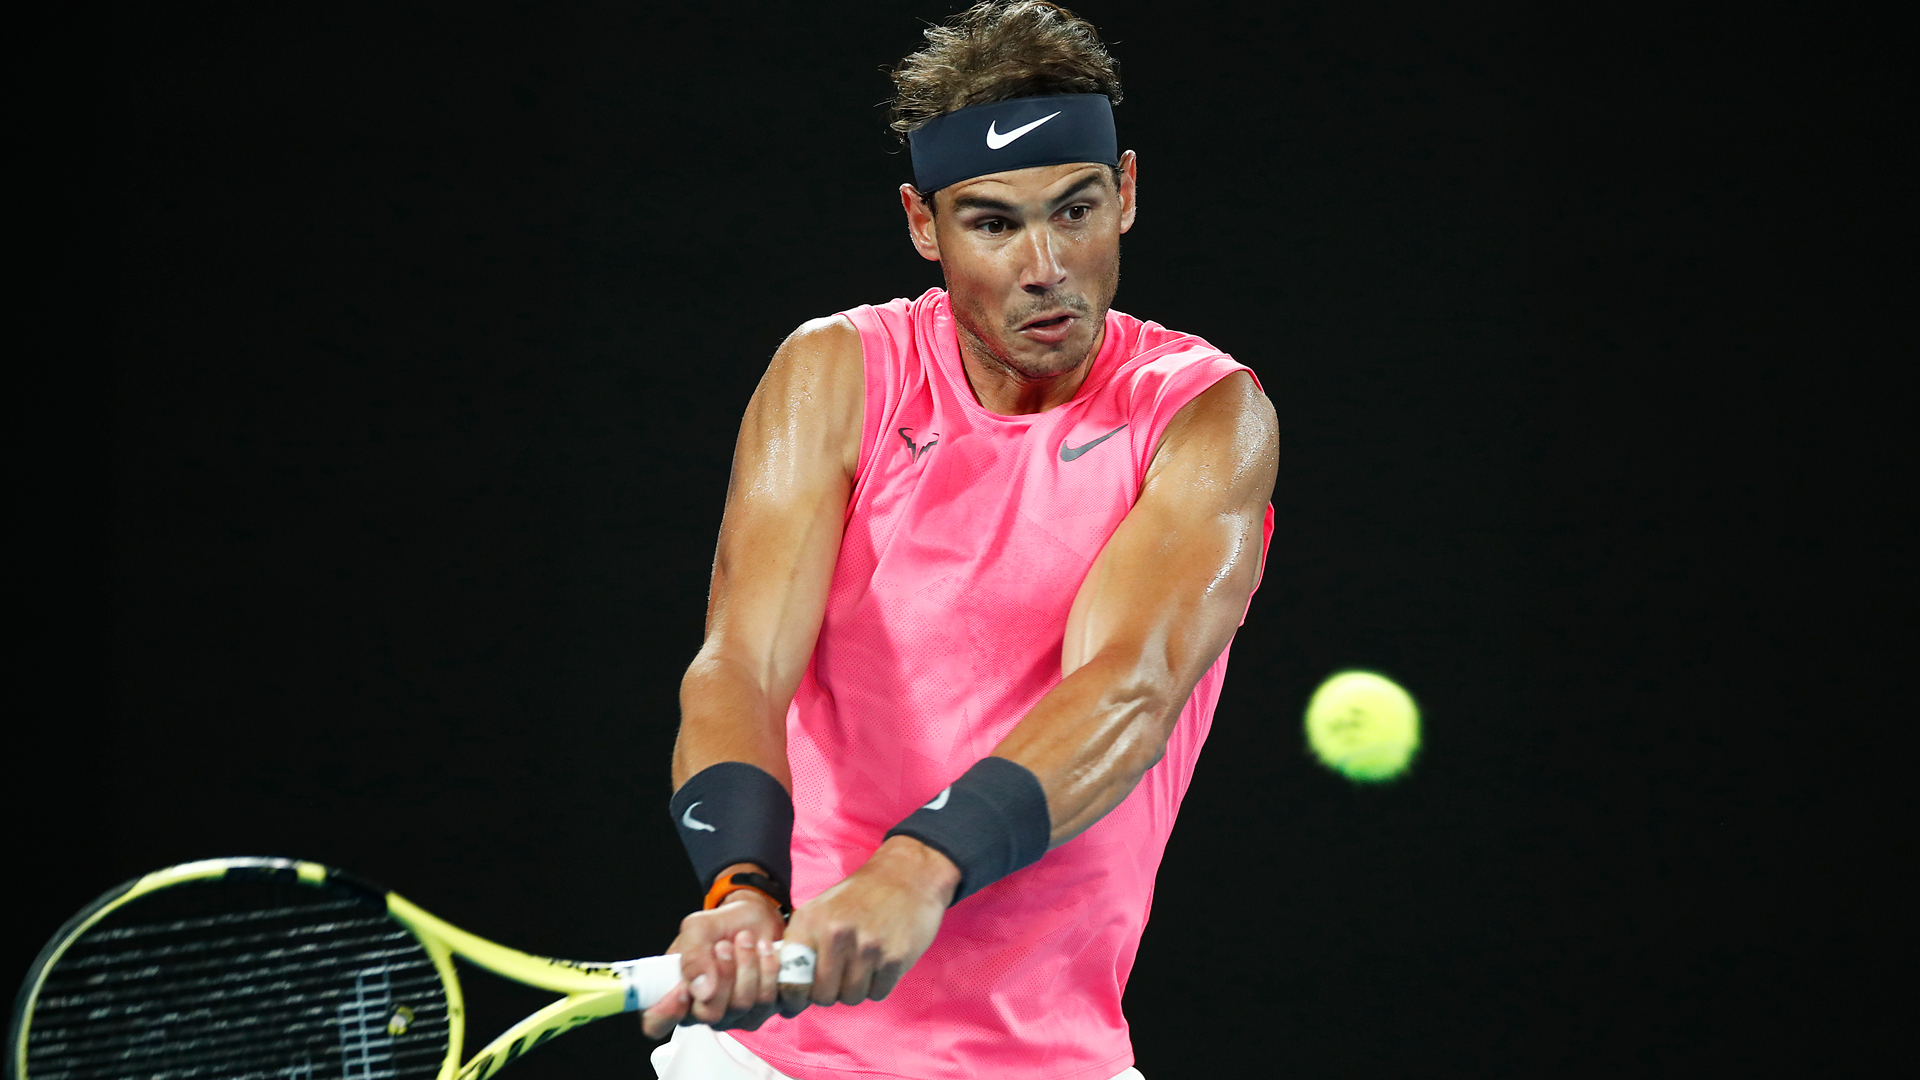 Australian Open 2020: Nadal, Medvedev through as Wawrinka survives